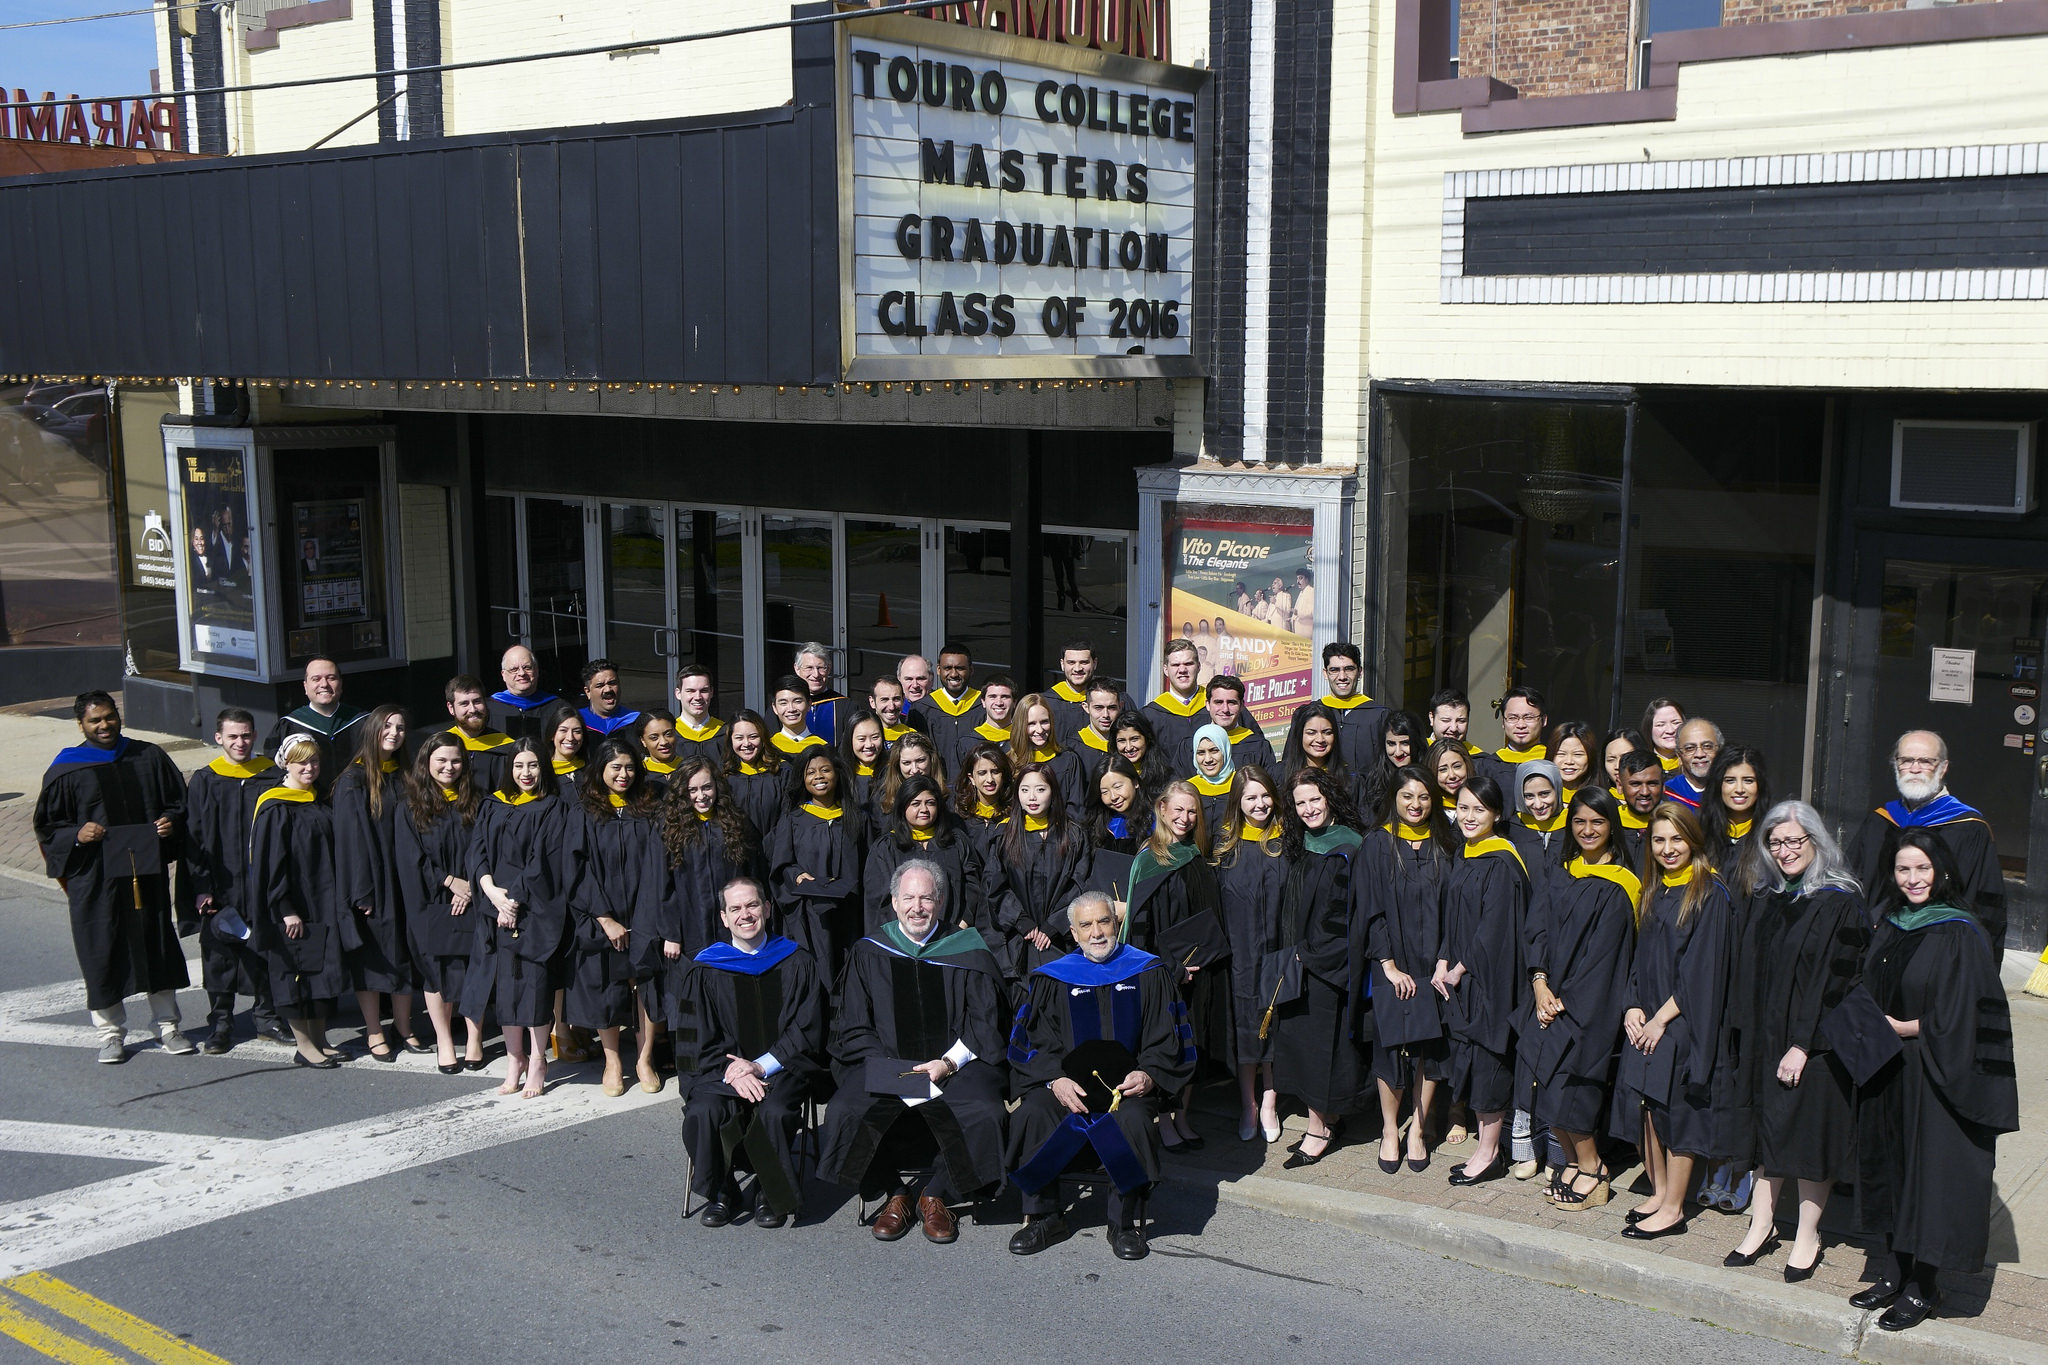 The TouroCOM-Middletown master of science class of 2016 commencement